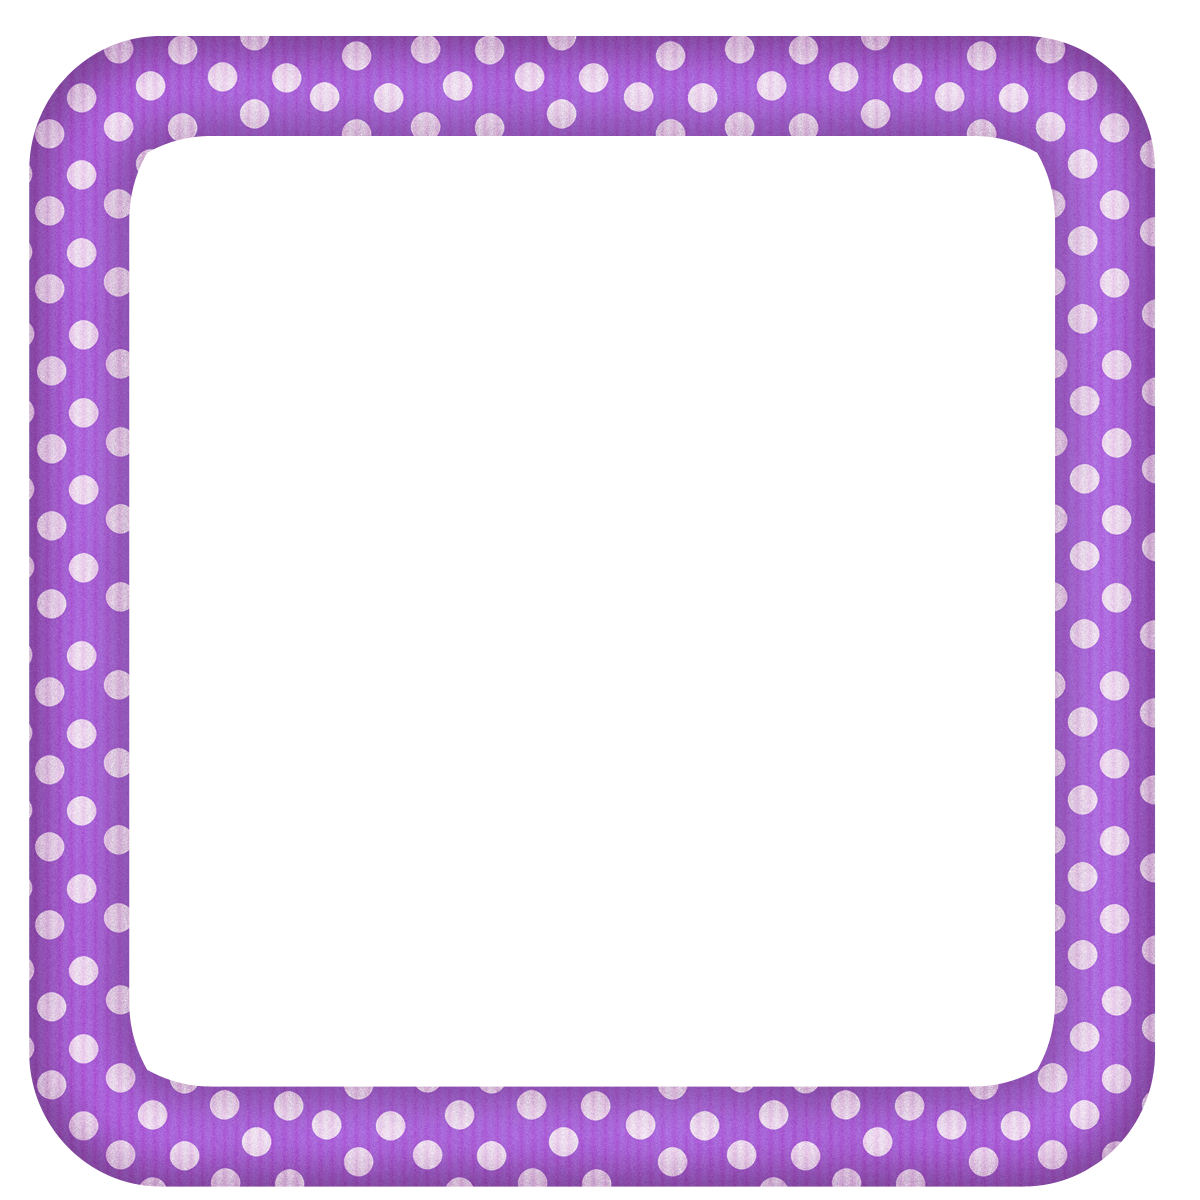 Purple frame png. Large transparent dotted photo